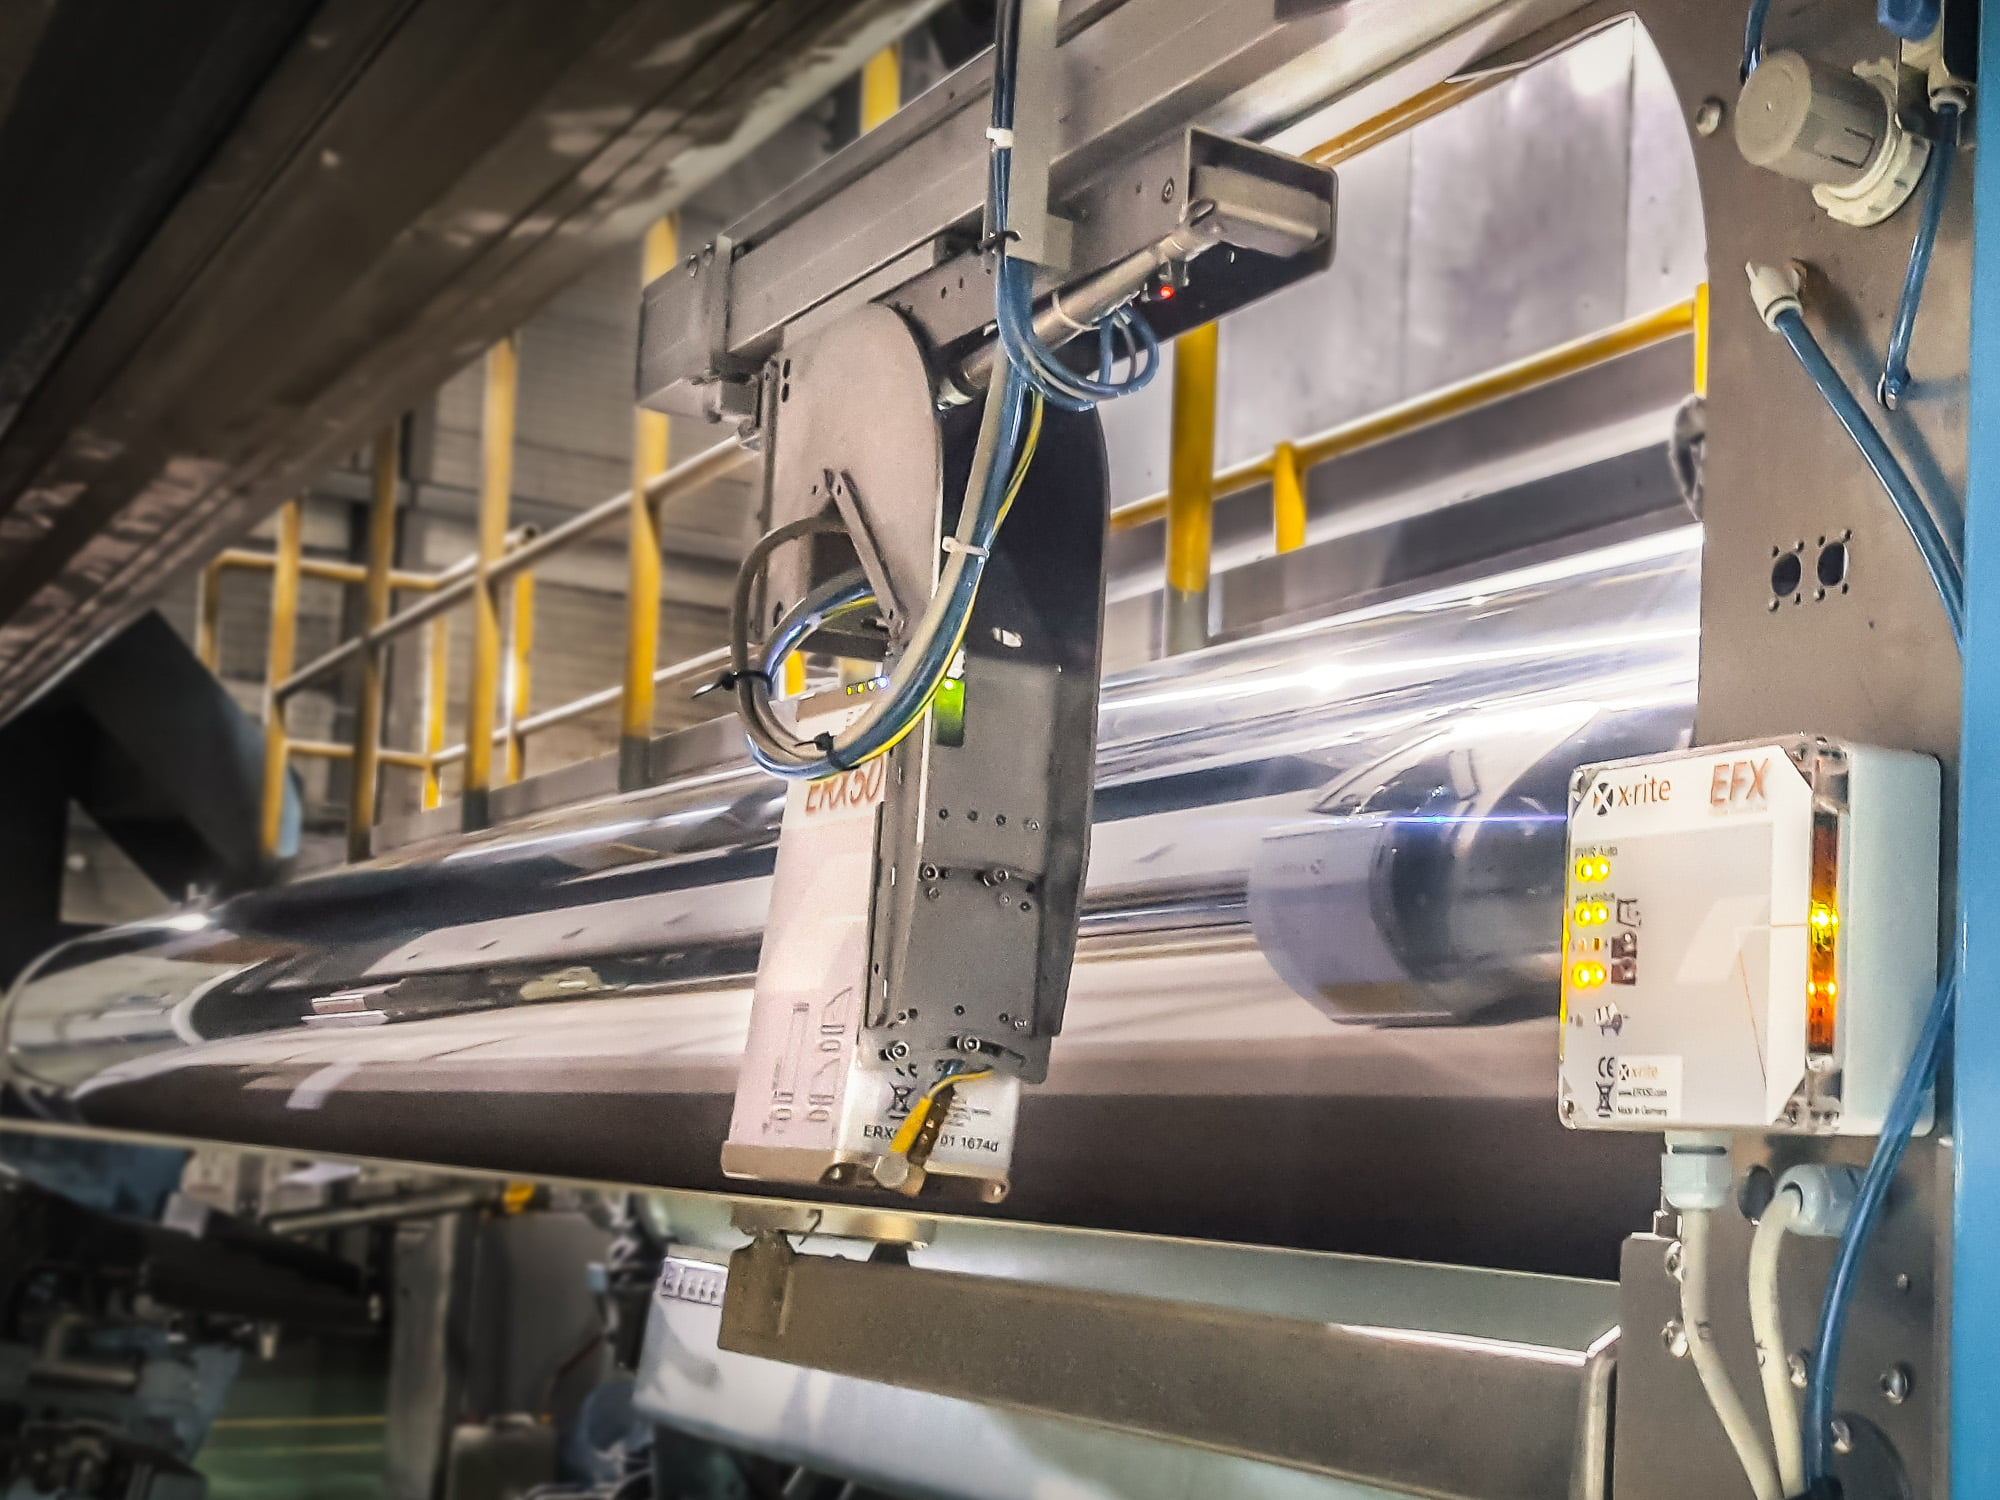 ERX50 from X-Rite guarantees best quality in paper production thanks colour control. Image rights: X-Rite GmbH, free for publication with copyright